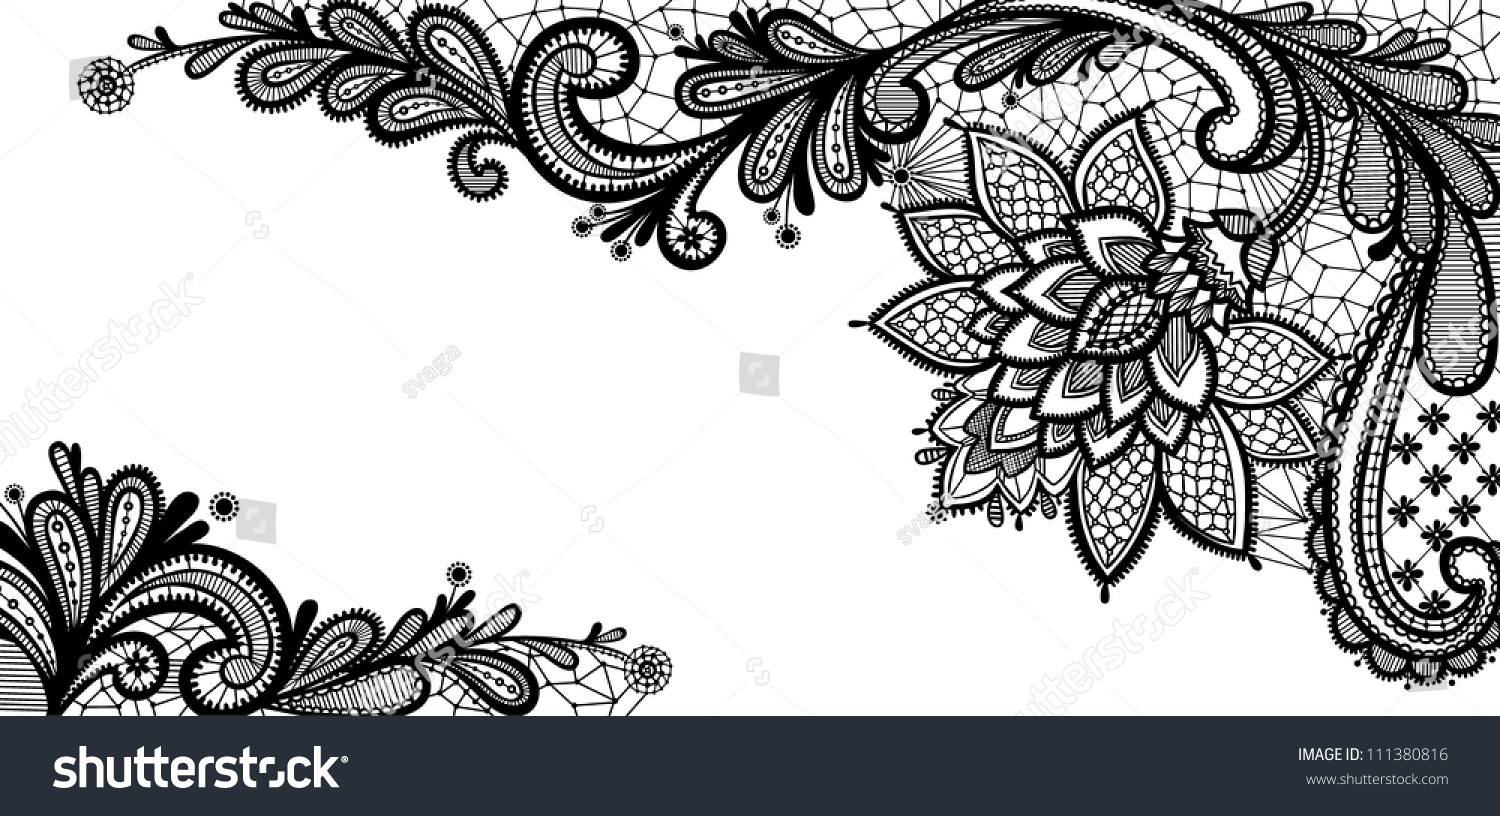 lace background images black lace vector design old lace background ornamental 7058